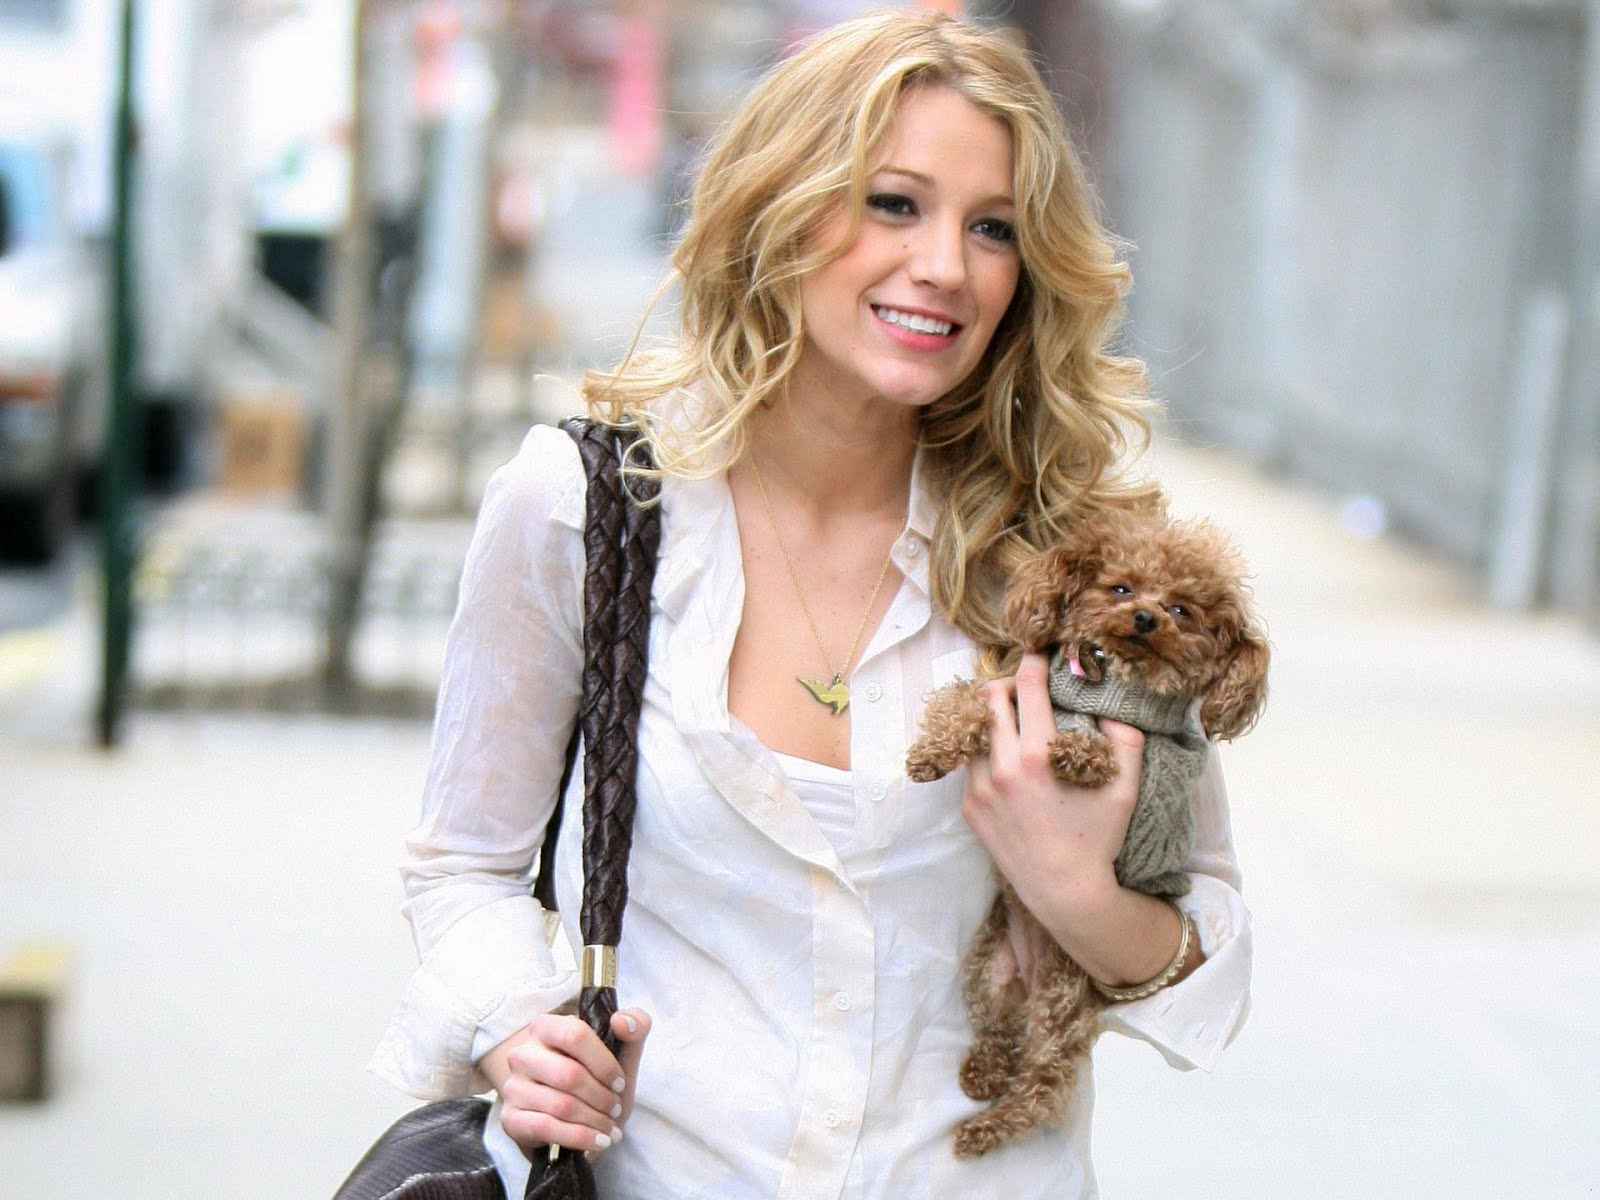 1600x1200 - Blake Lively Wallpapers 31